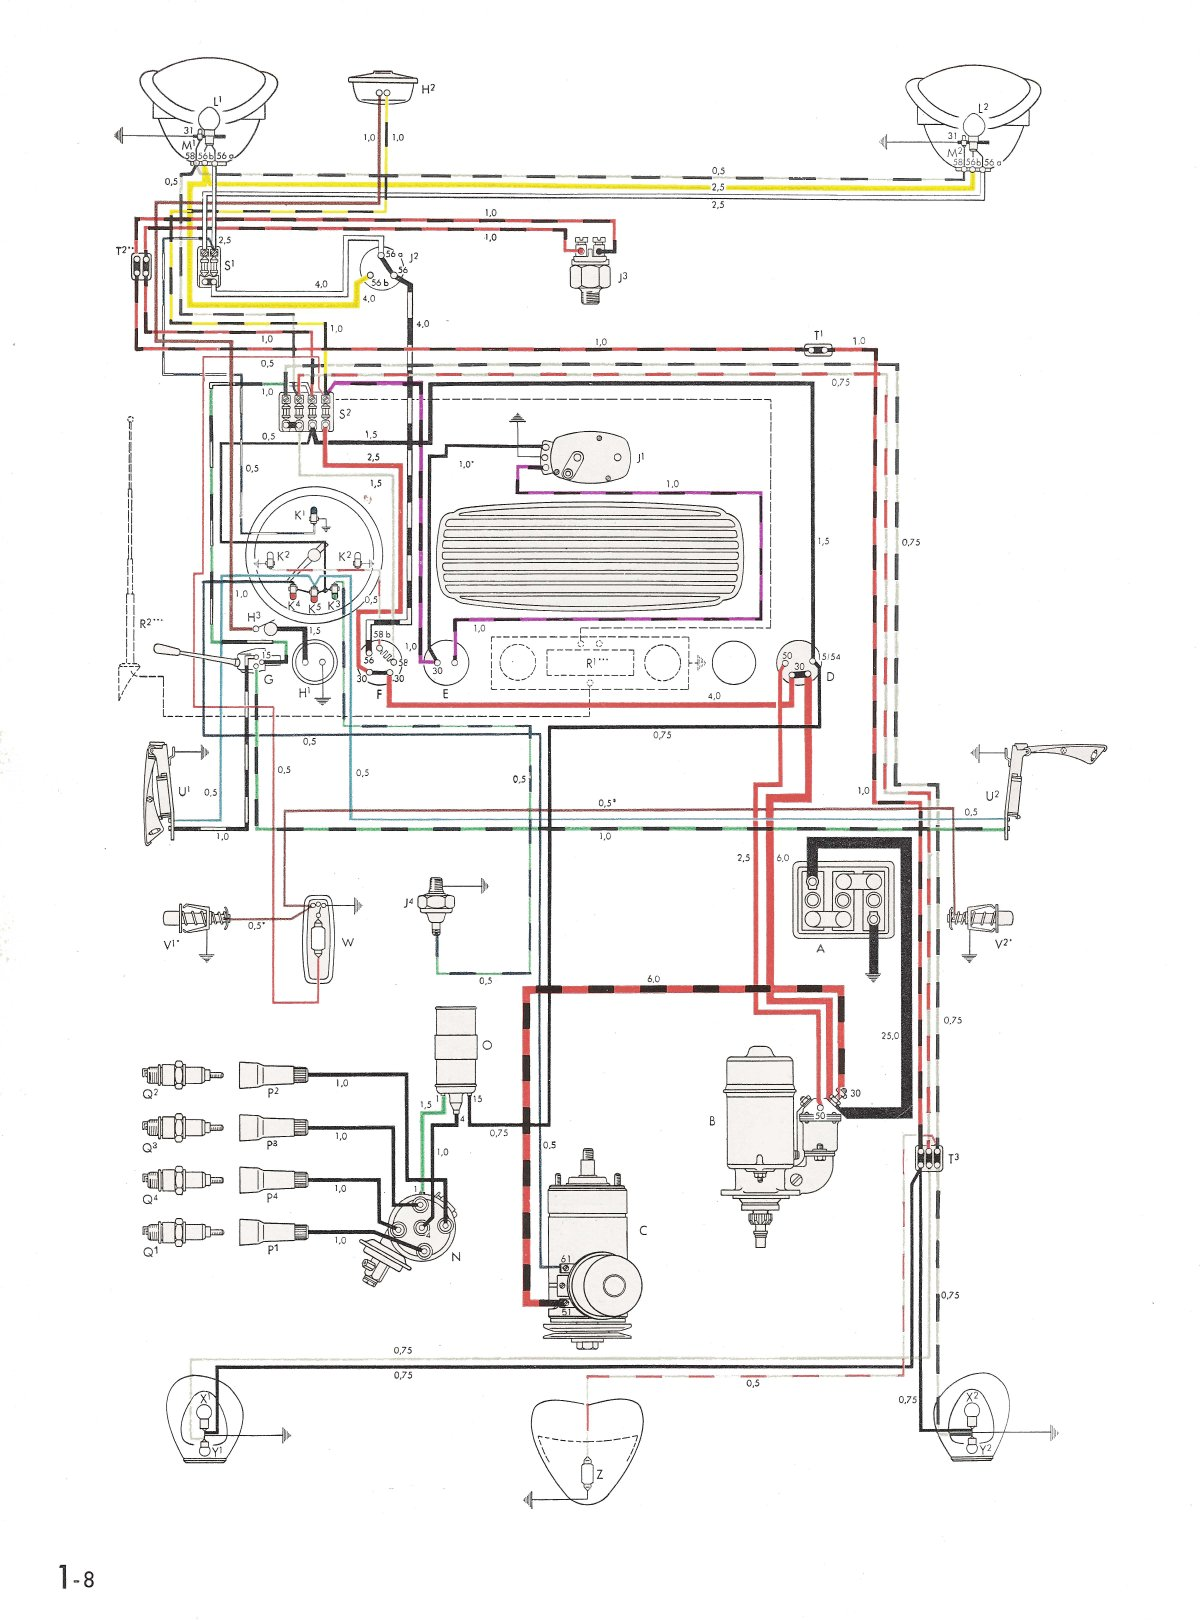 thesamba com type 1 wiring diagrams rh thesamba com 1973 vw wiring 1973 beetle wiring diagram